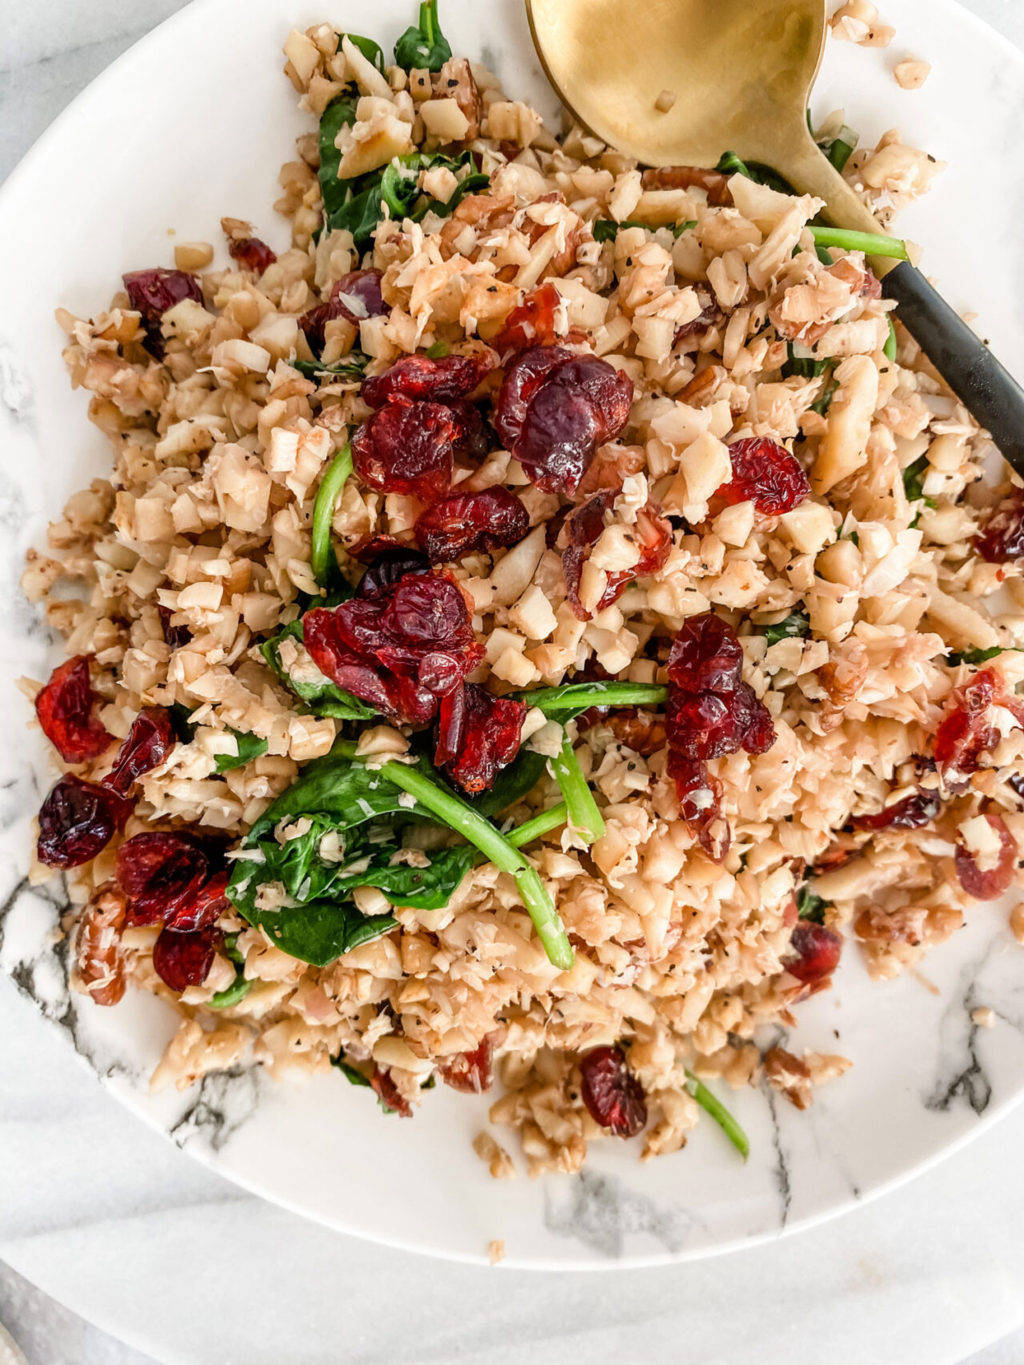 Leftover-Thanksgiving-Rice-1280x1707.jpg